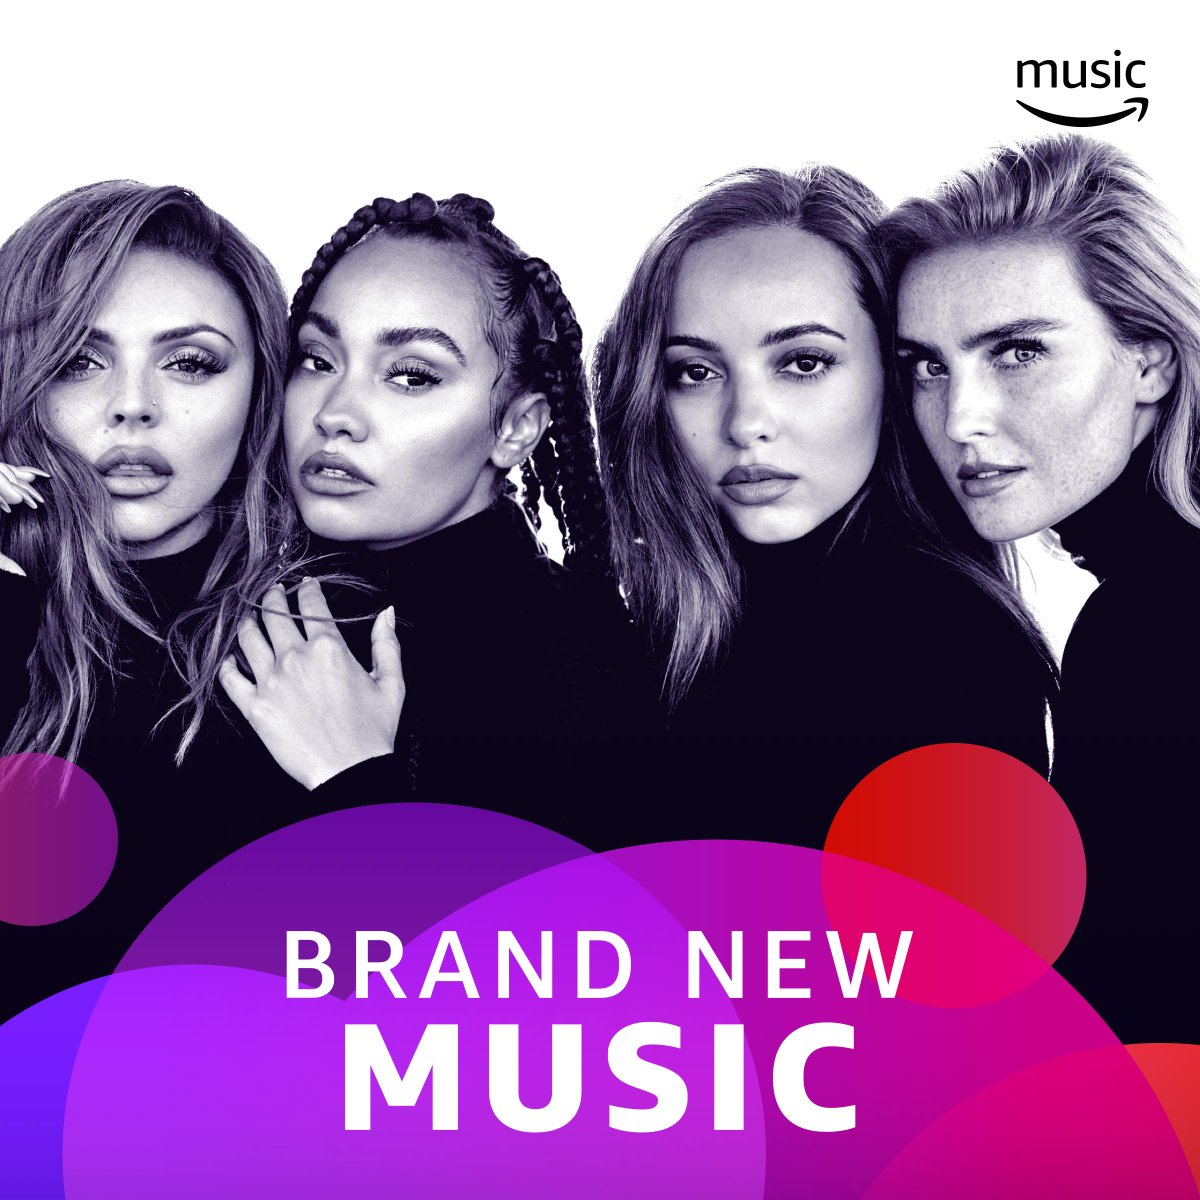 Thanks for all the love on #WomanLikeMe today @AmazonMusic & @AmazonMusicUK 🎶 https://t.co/w76EwpDSa9